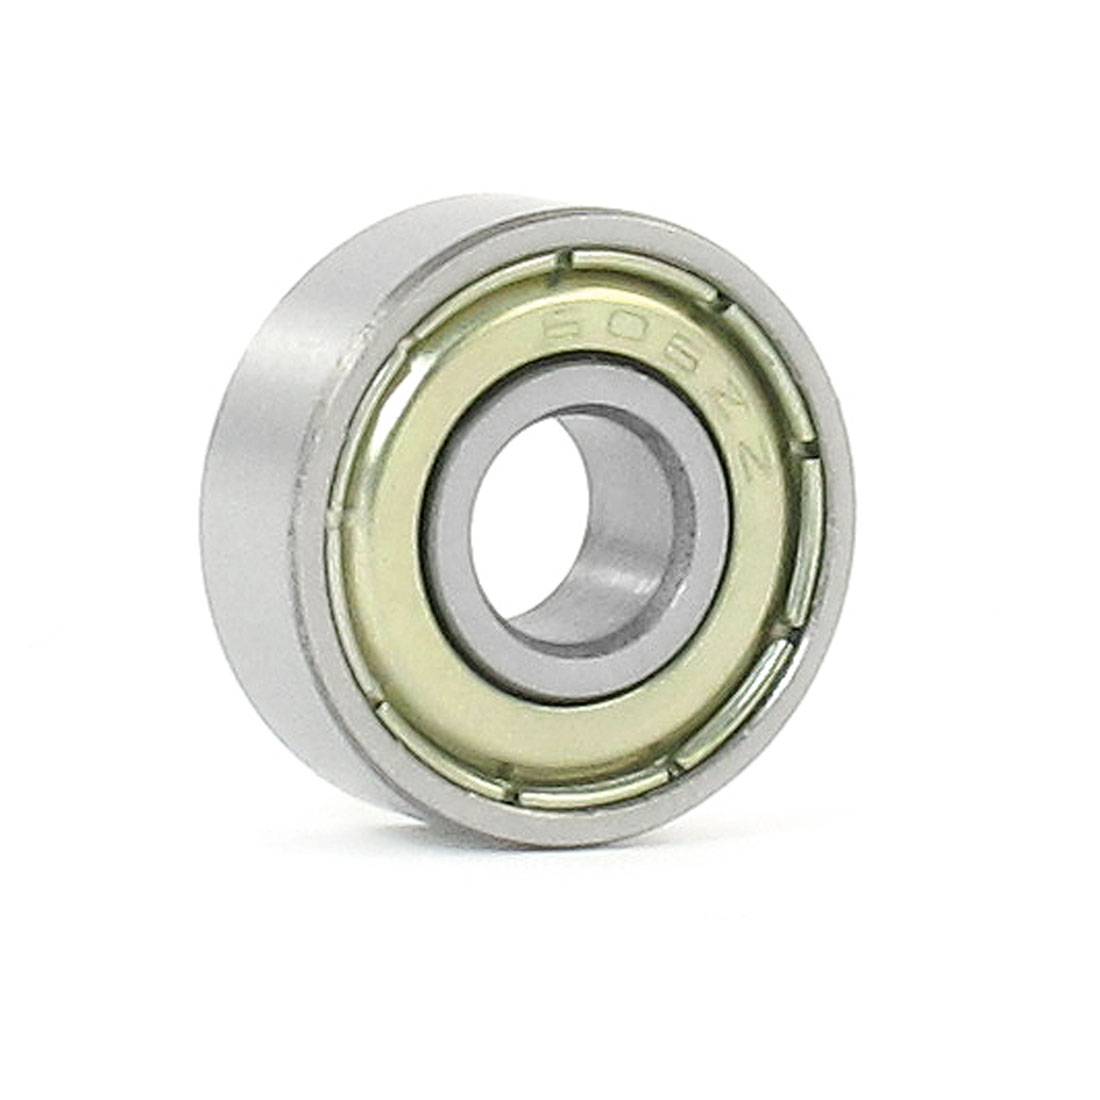 606ZZ 6mm x 17mm x 5mm Miniature Shield Sealed Deep Groove Ball Bearing